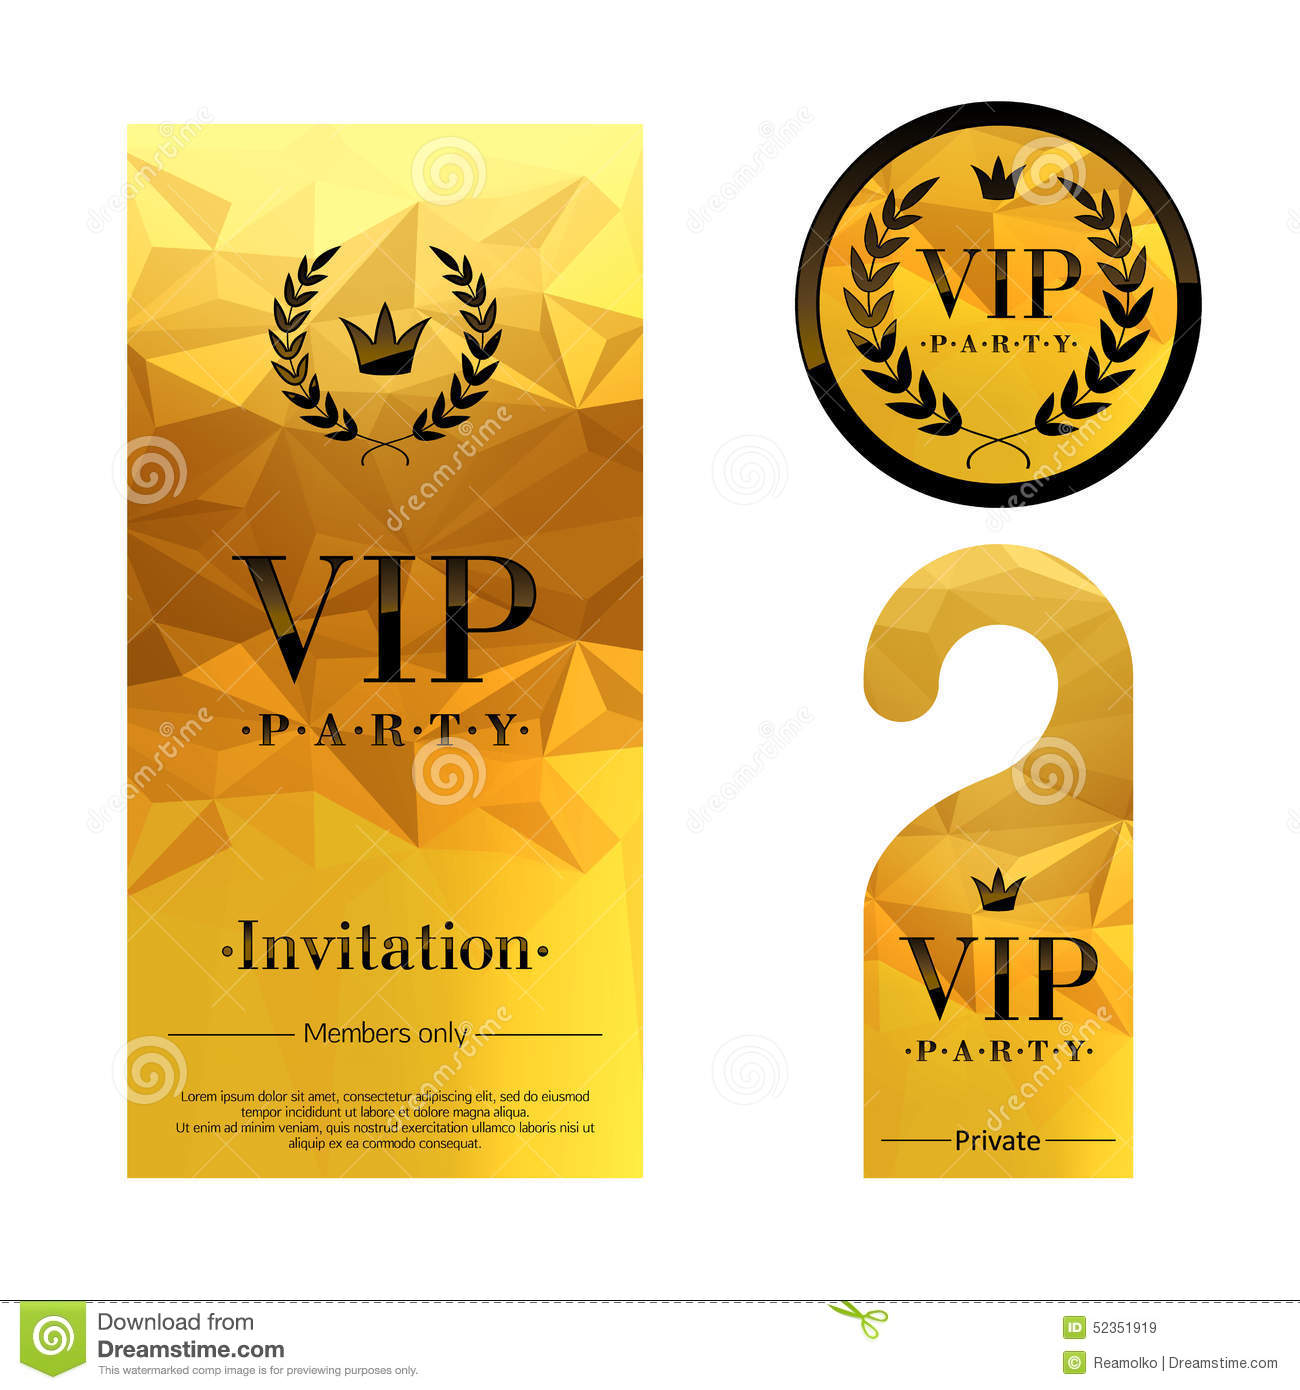 VIP Party Invitation Card Warning Hanger And Stock Vector